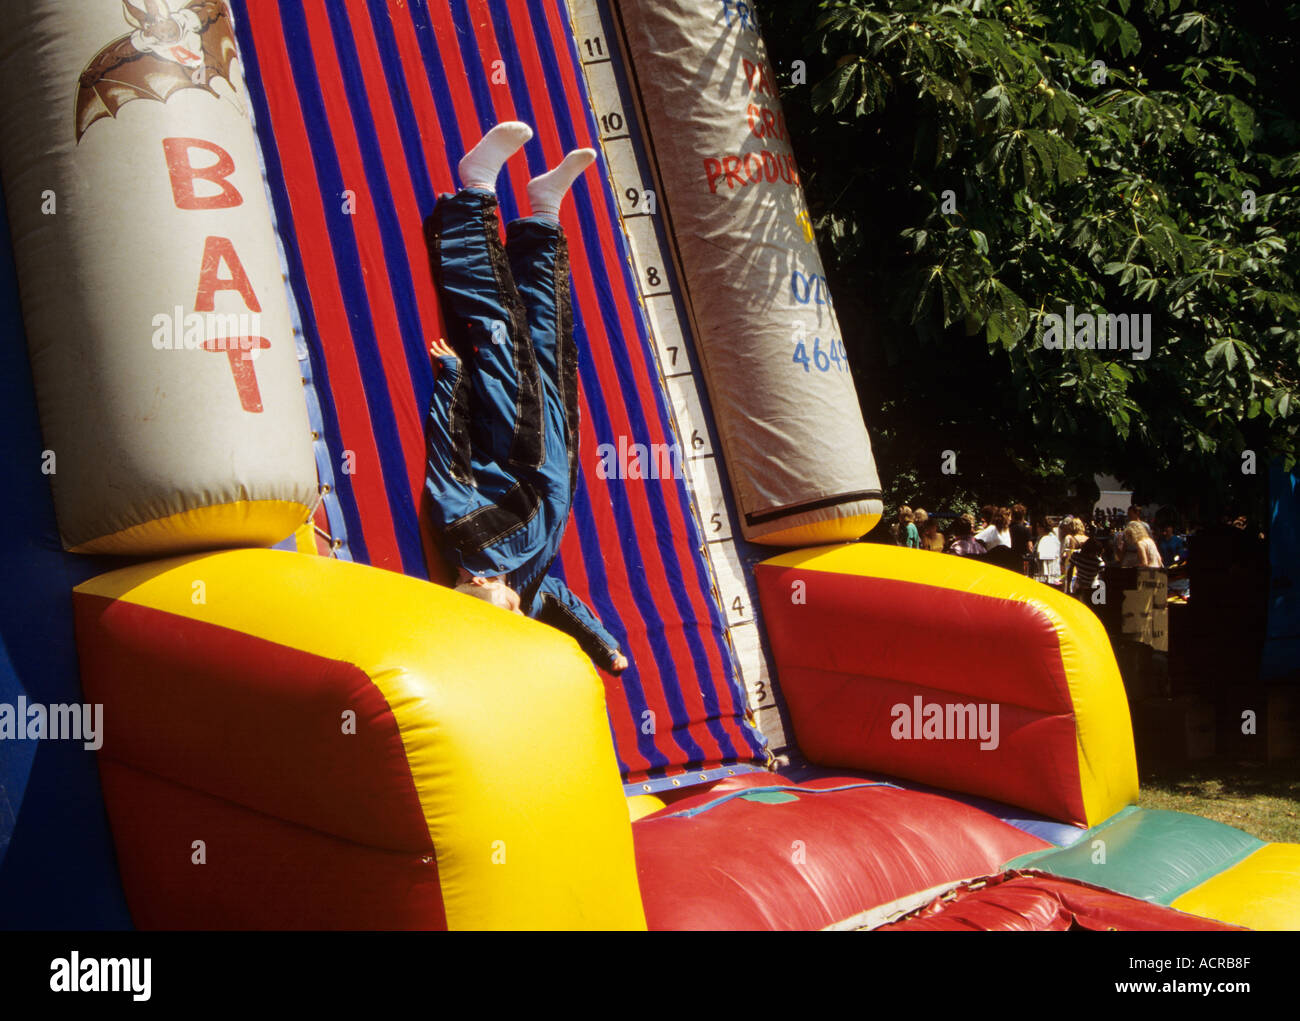 Boy attempting Velcro Wall dressed in special velcro suit at fair in London Stock Photo